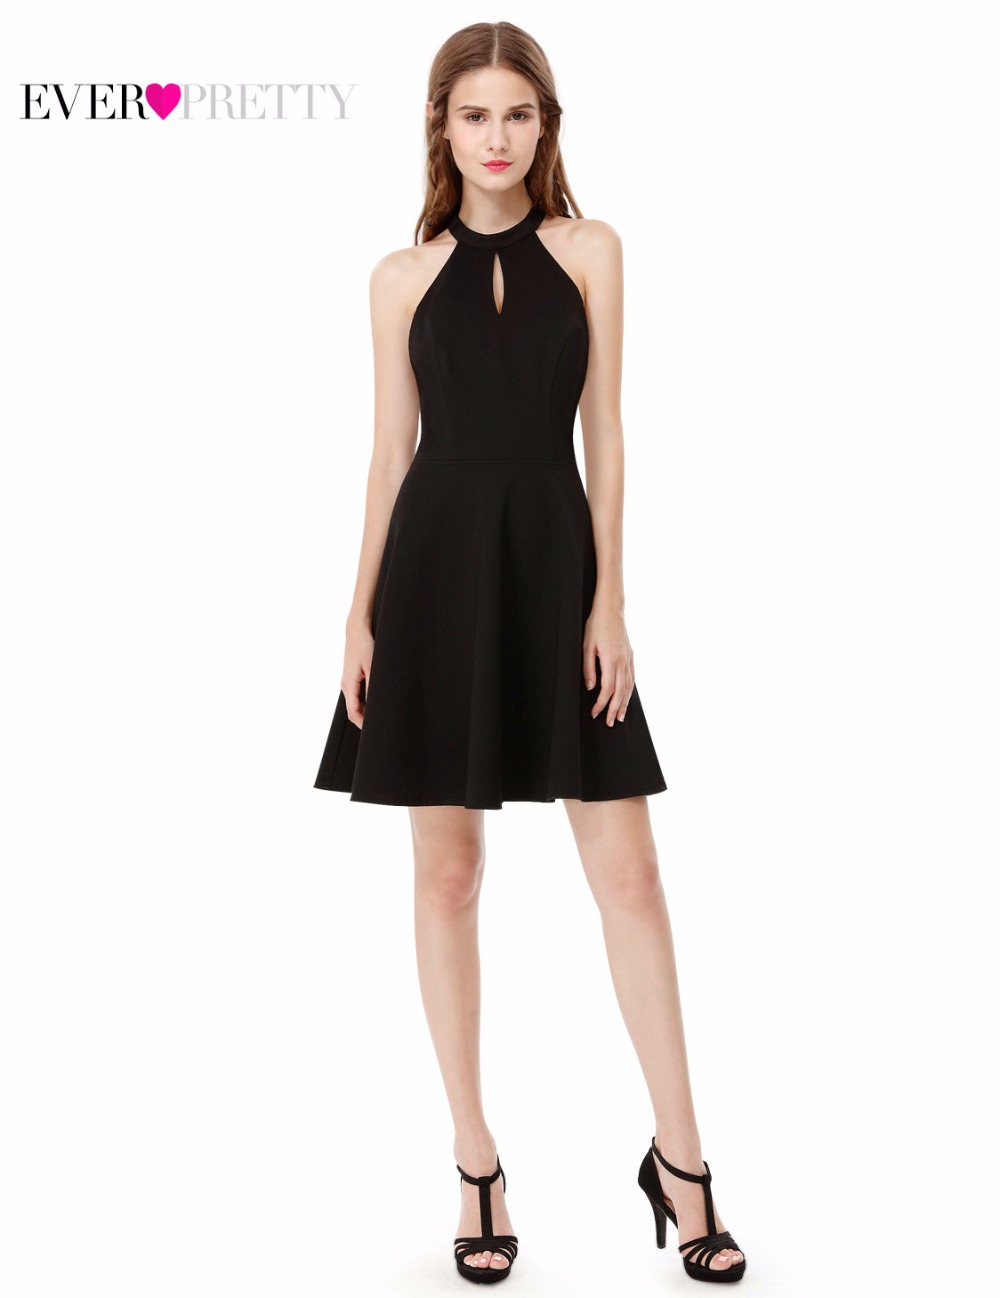 Compare Prices on Short Cocktail Dresses for Teenagers- Online ...